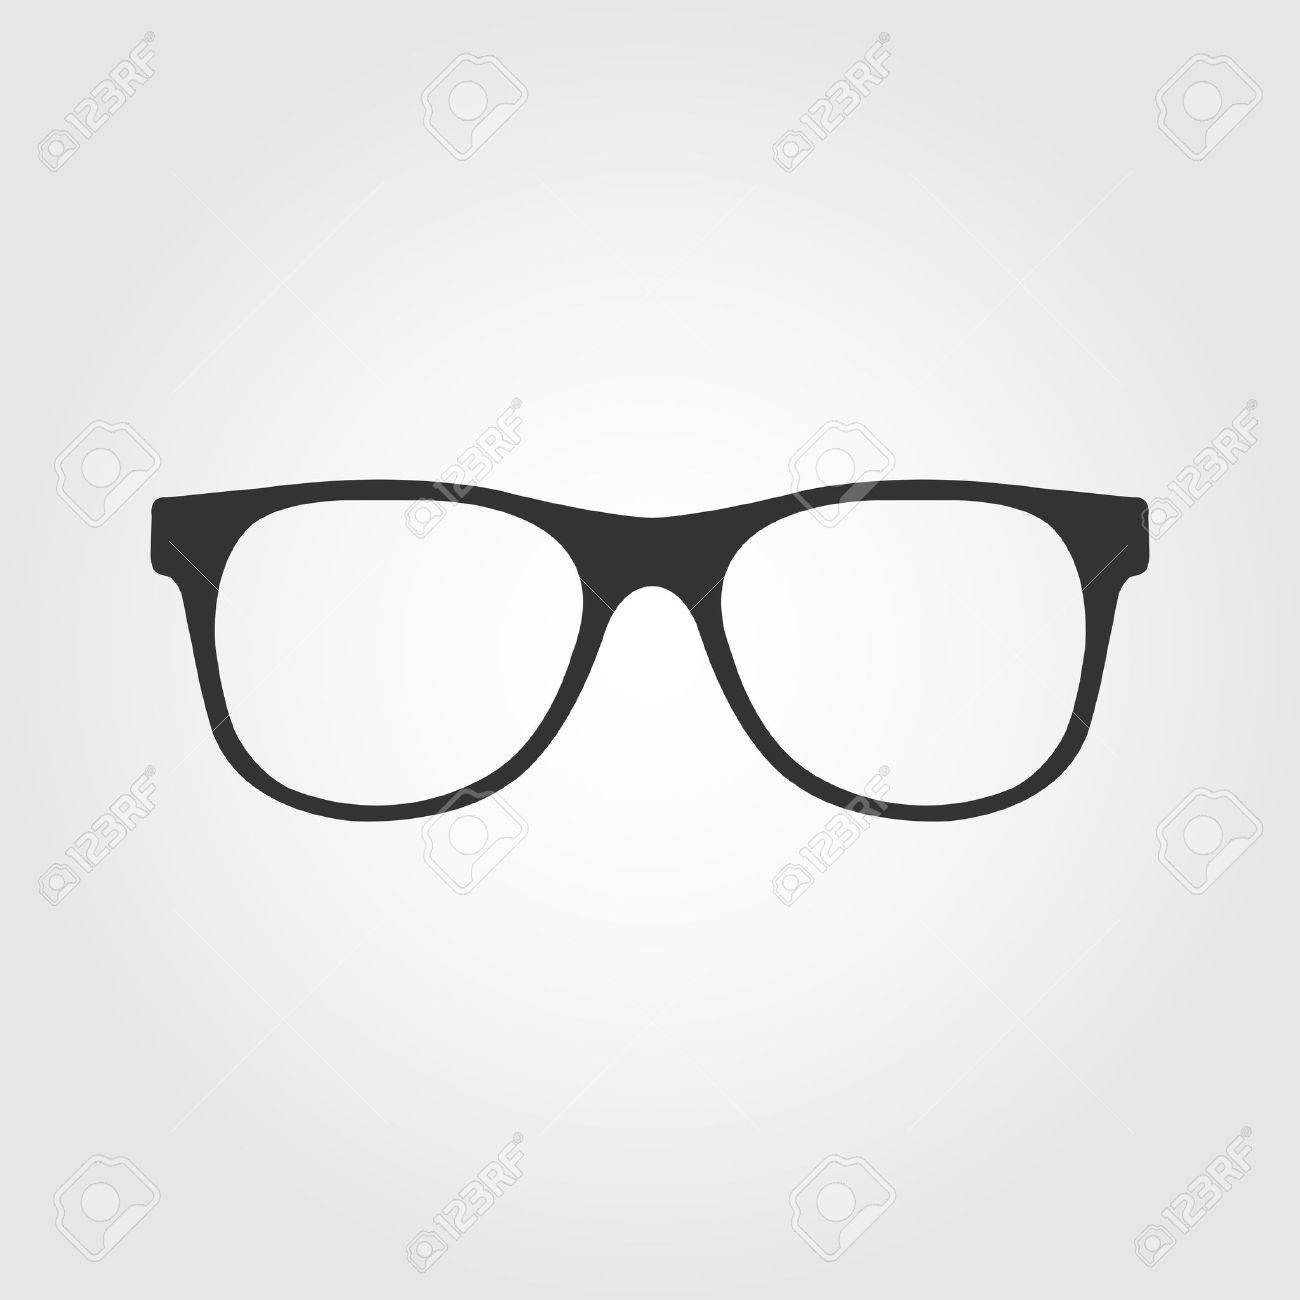 173e84ff6a28 Glasses Icon